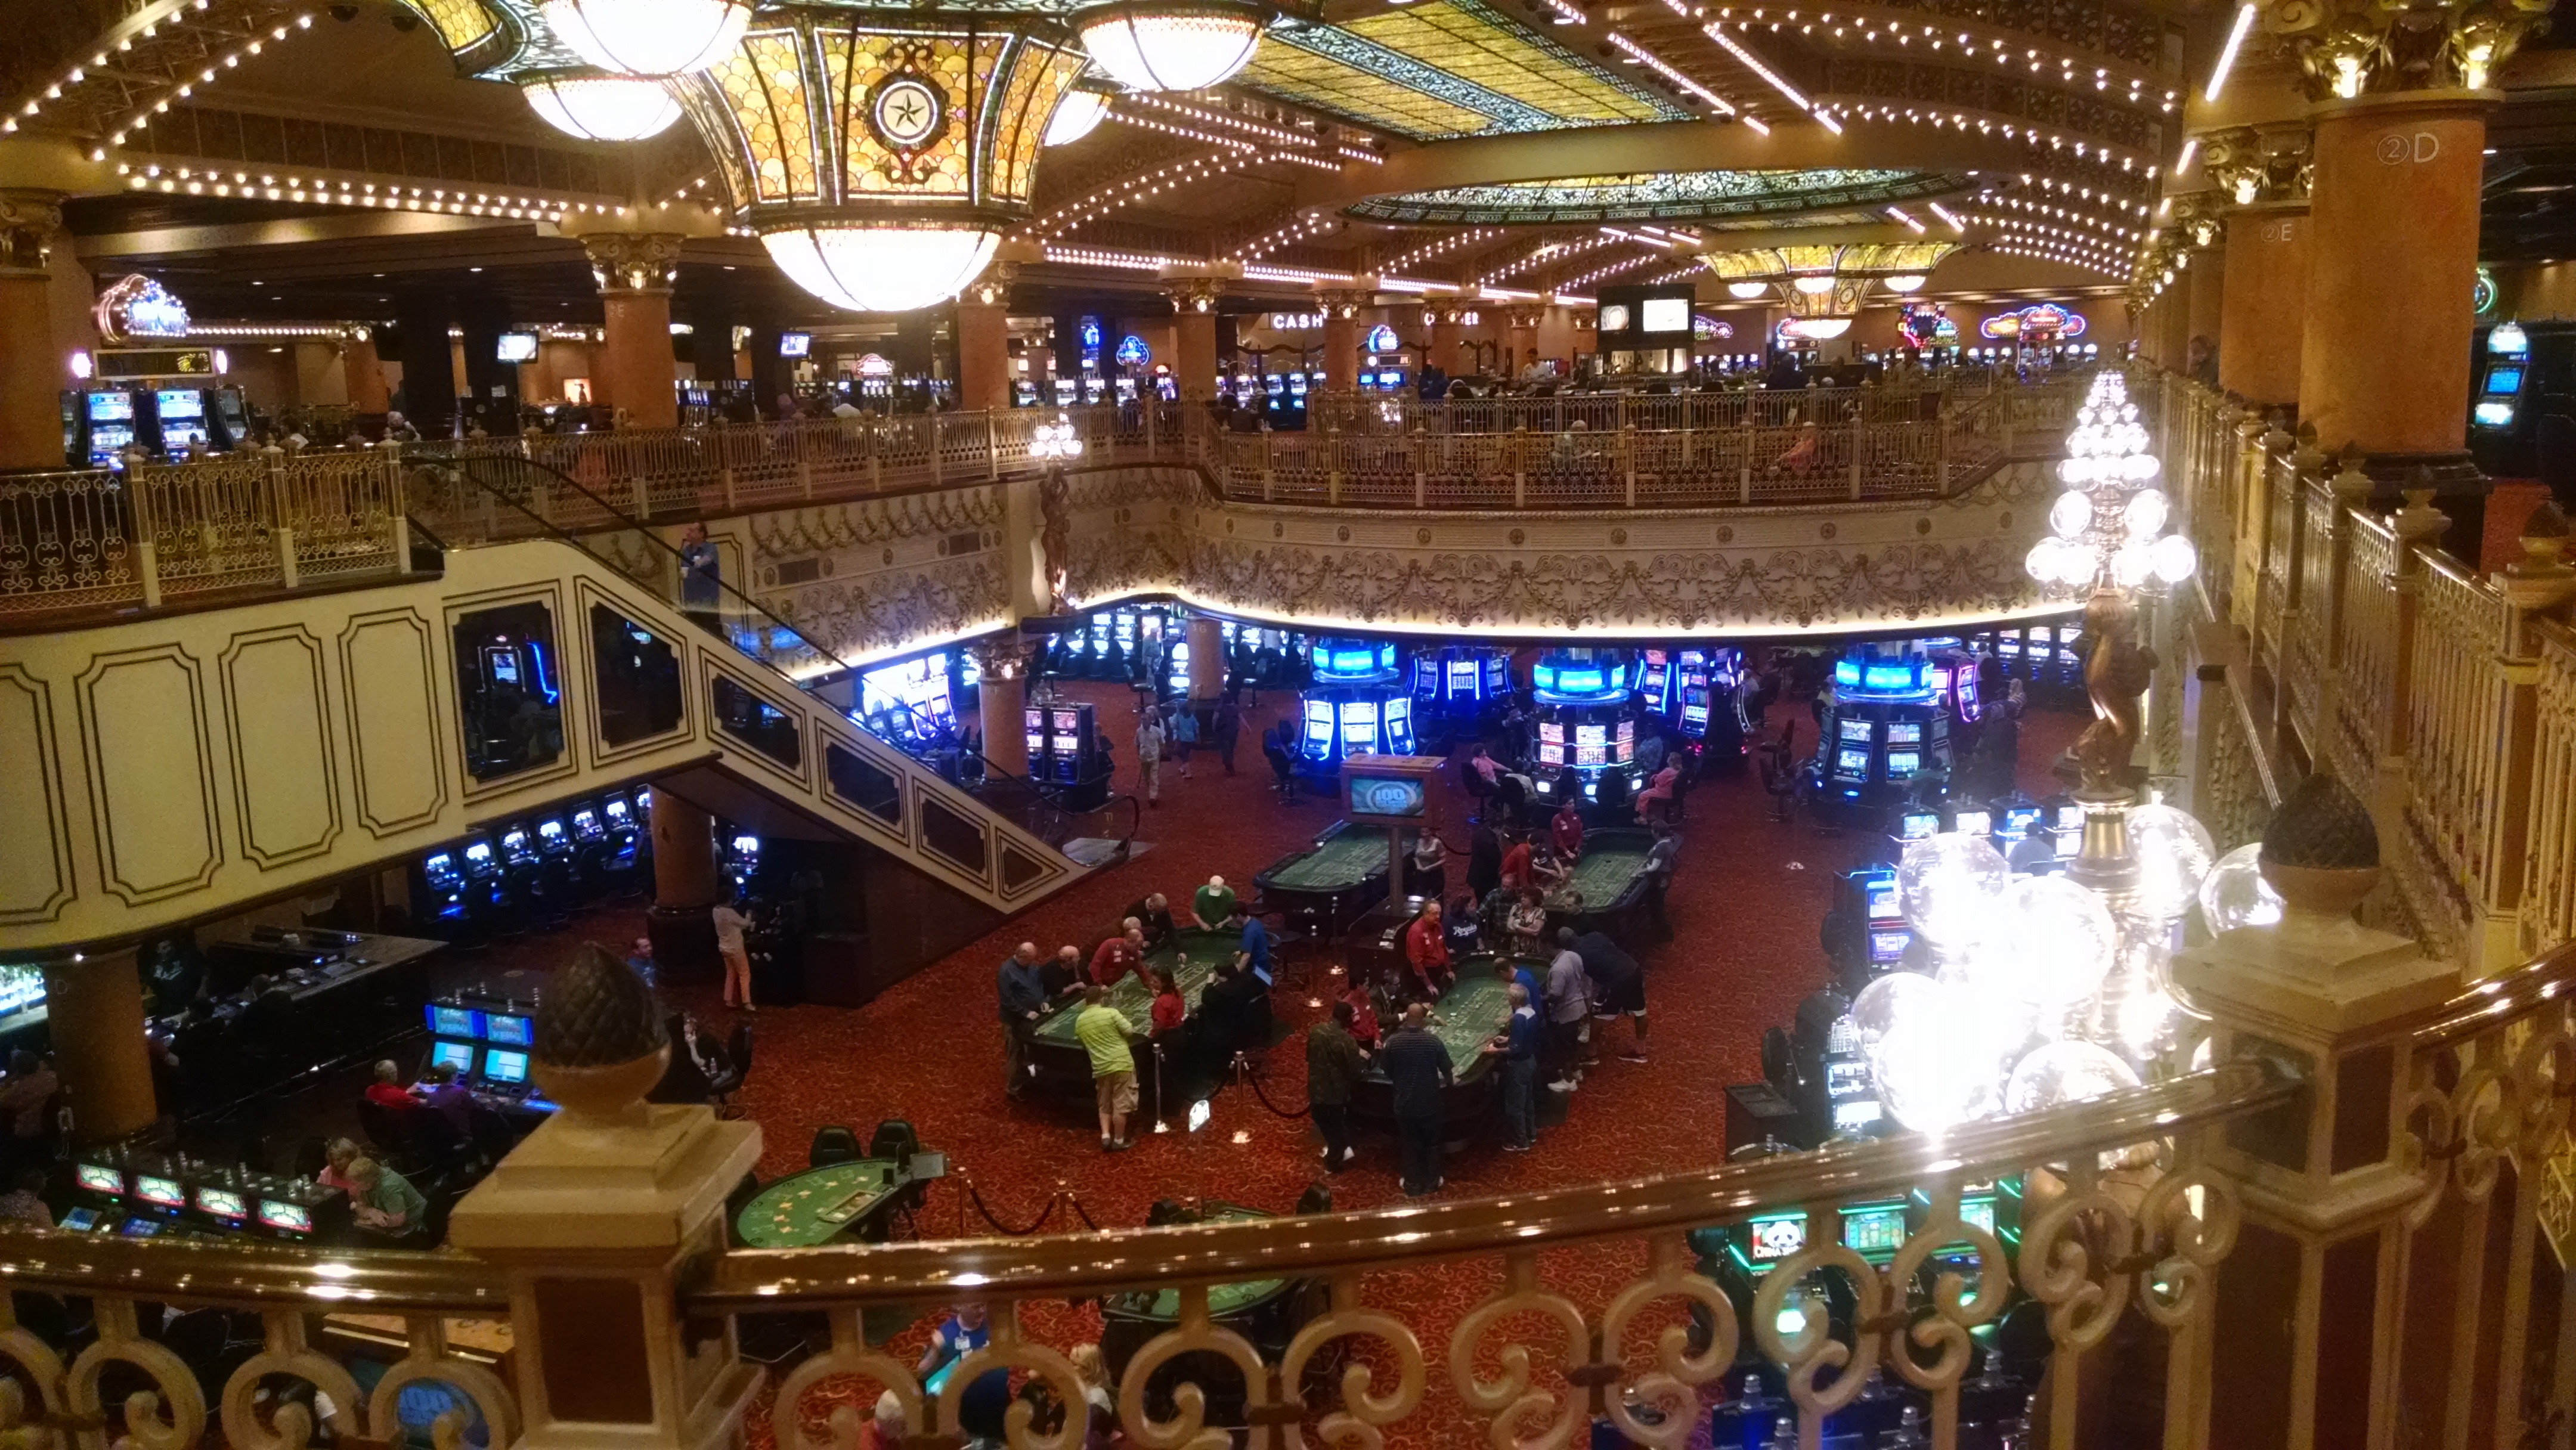 20150501-056 KC Ameristar Hotel and Casino